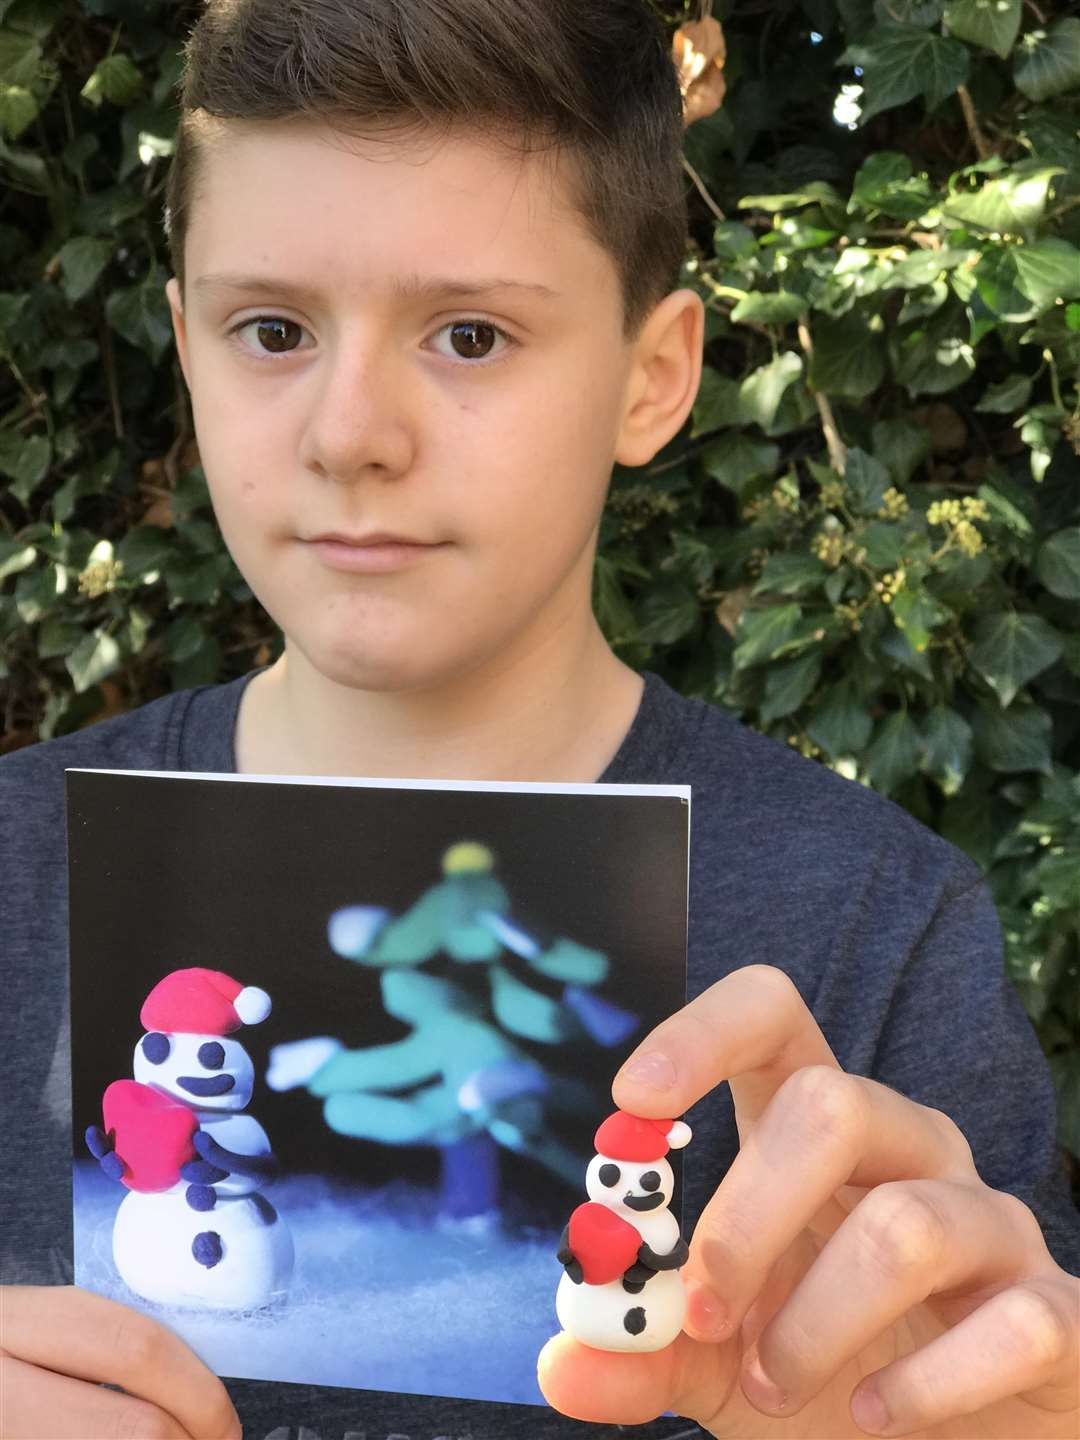 Luke Adams, 13, won a Christmas card competition organised by the beat SCAD charity based at Melton Mowbray (5135866)